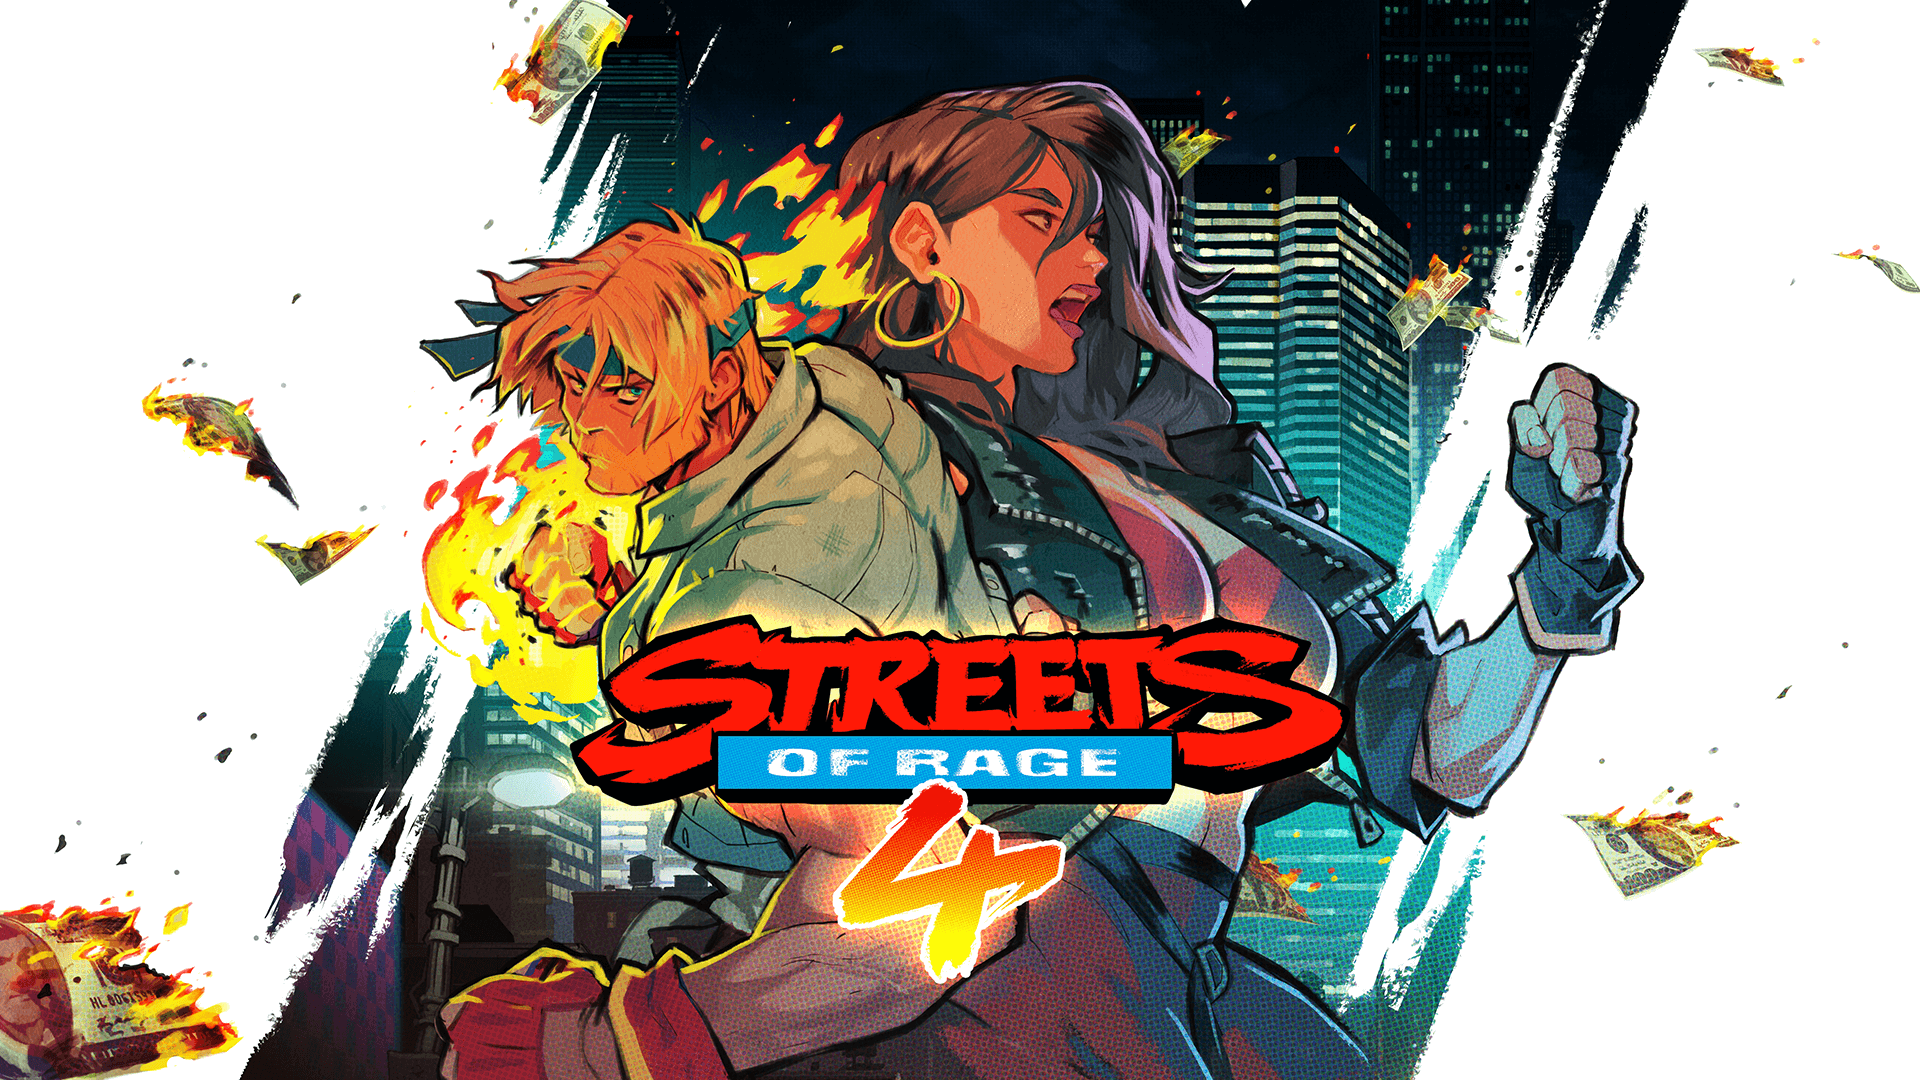 Behind the Scenes Footage of Streets of Rage 4 Released